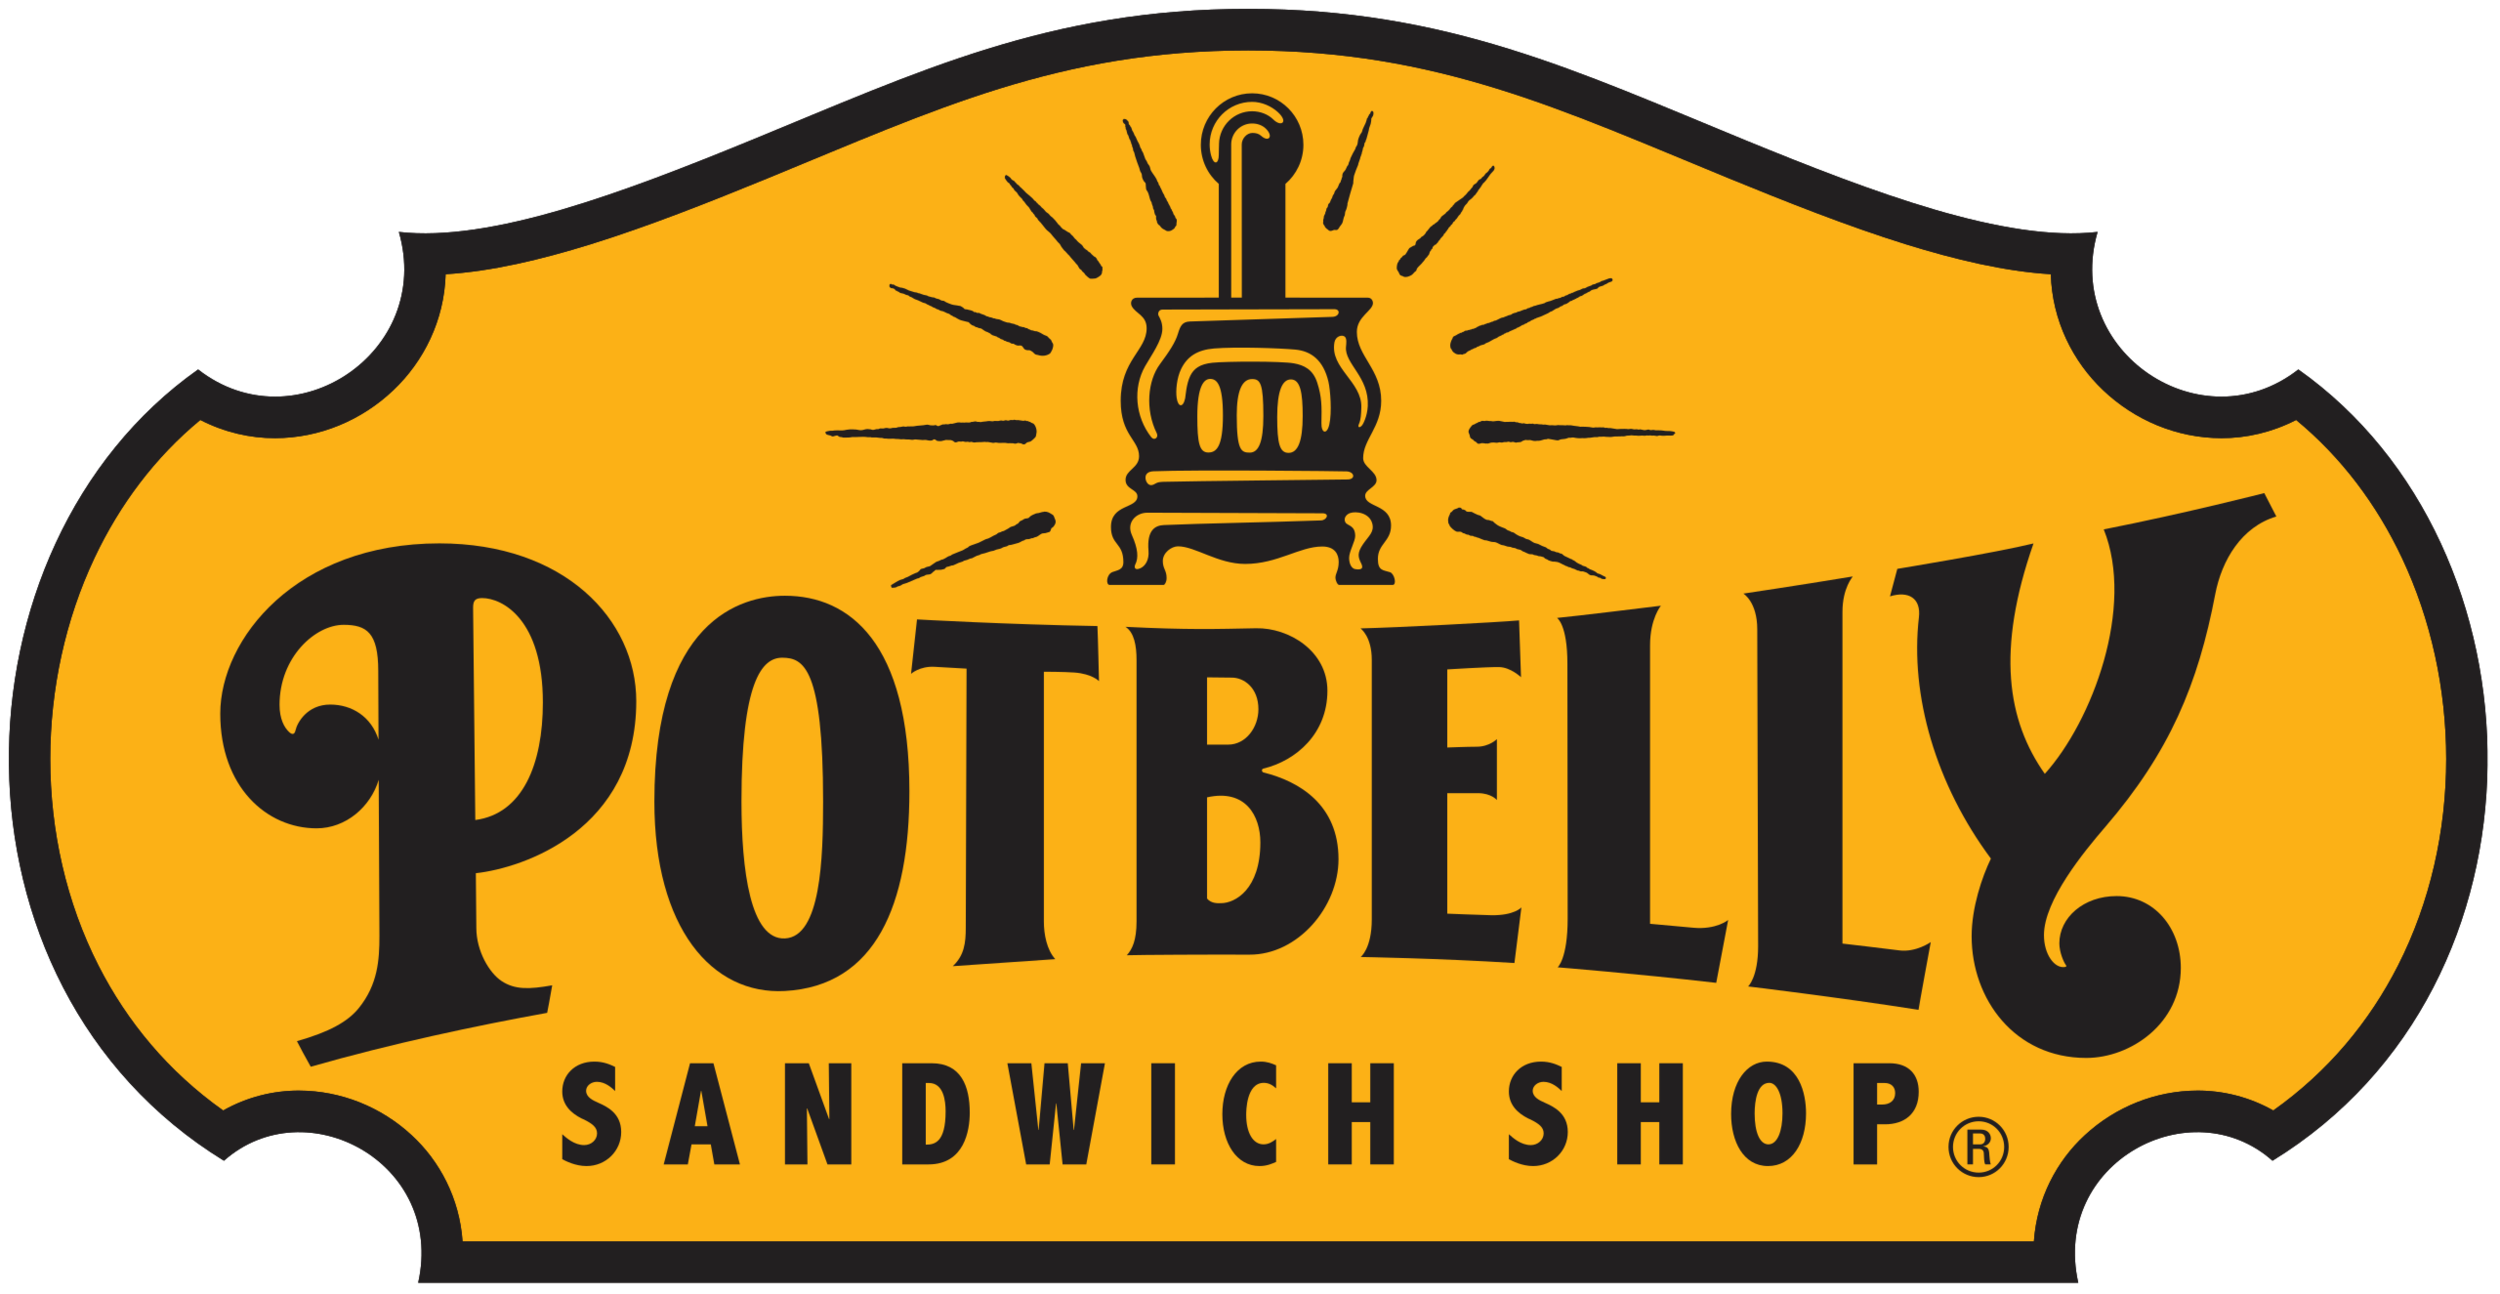 Potbelly Sandwich.png